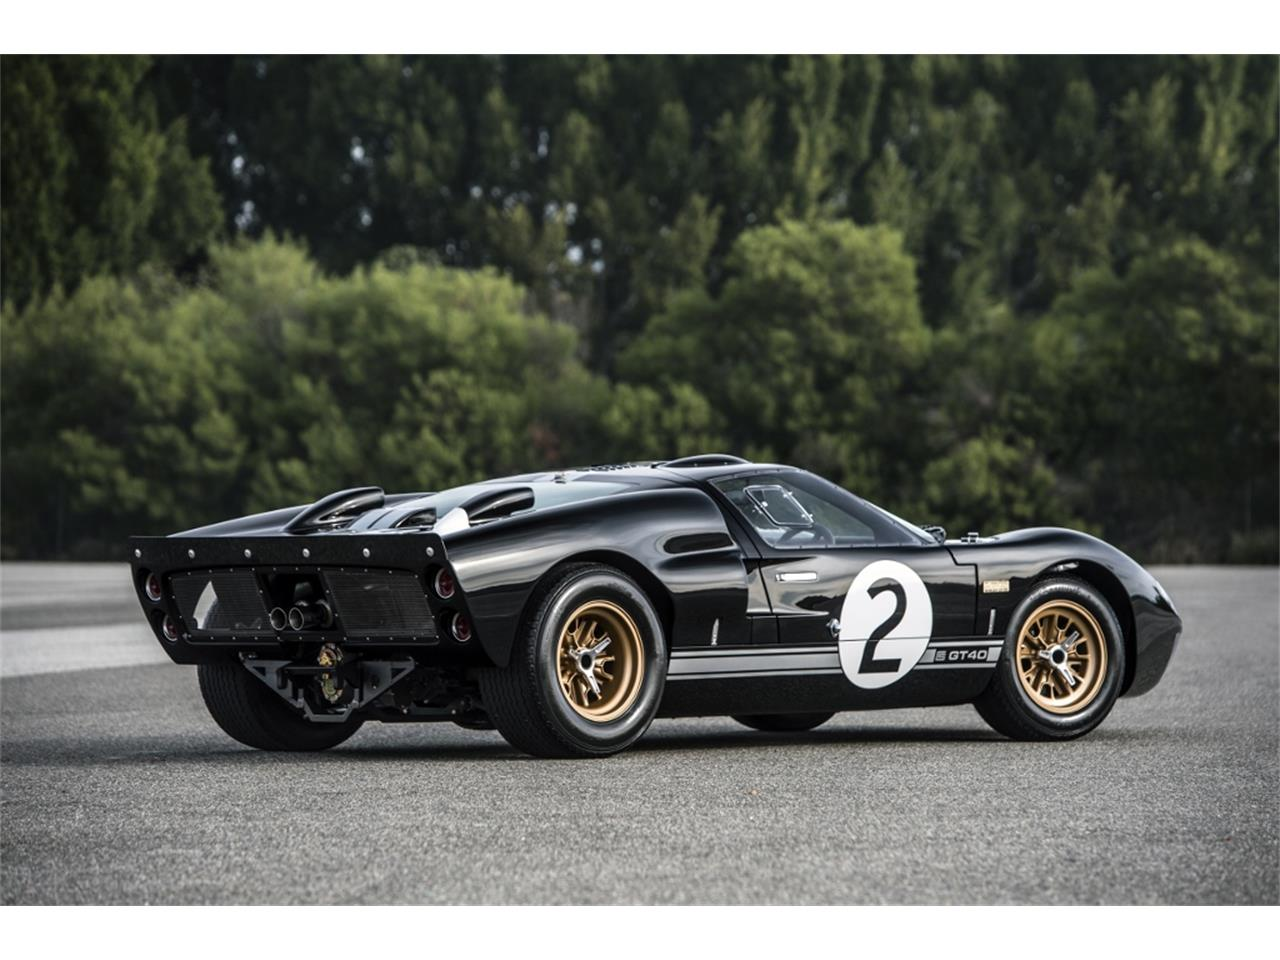 Large Picture of 1966 Shelby GT40 Mark II located in Irvine California - $299,000.00 Offered by Hillbank Motorsports - LARE